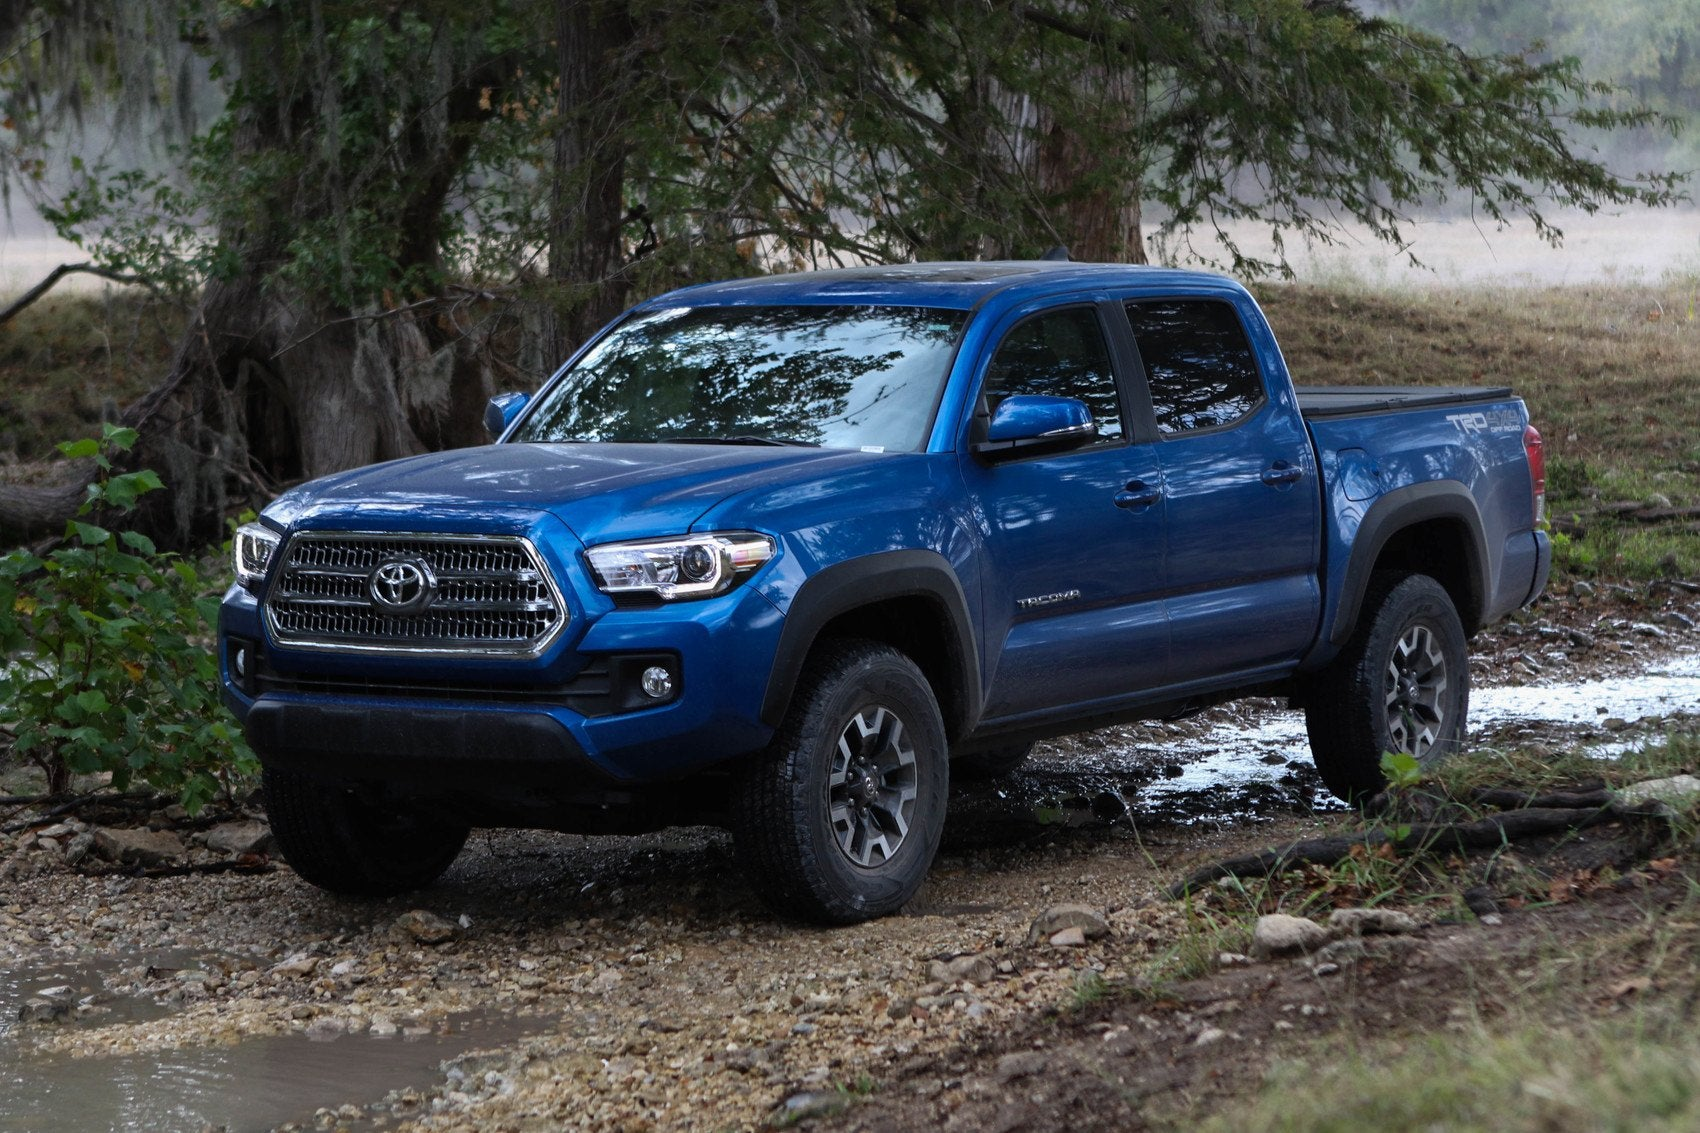 2018 Toyota Tacoma Limited Review: Not Too Shabby